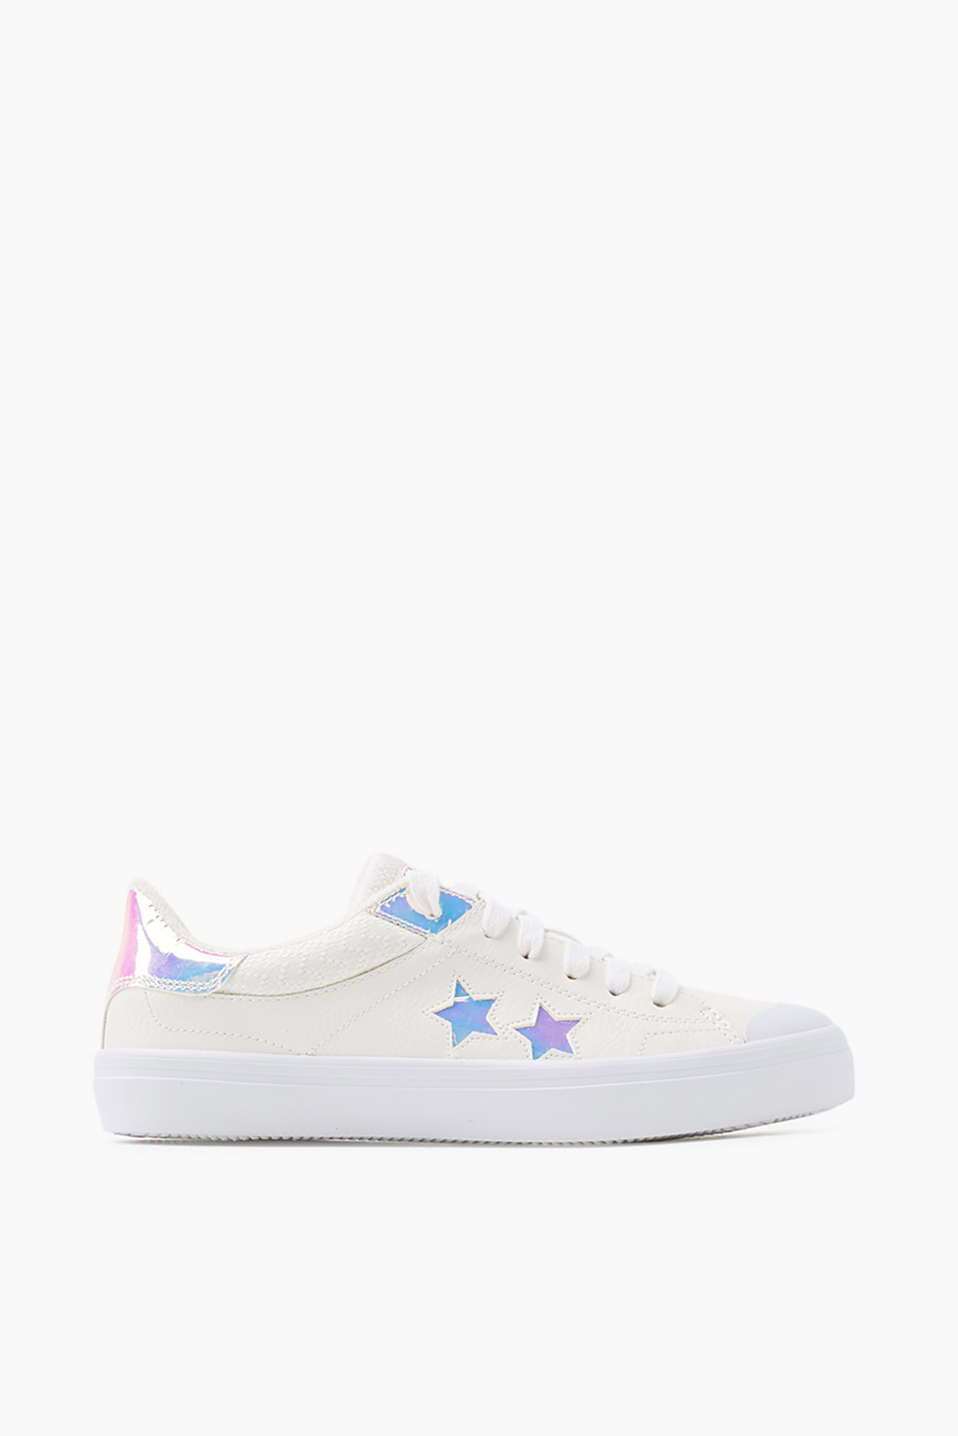 With a rubber sole: lace-up trainers with reflective star details, in faux leather